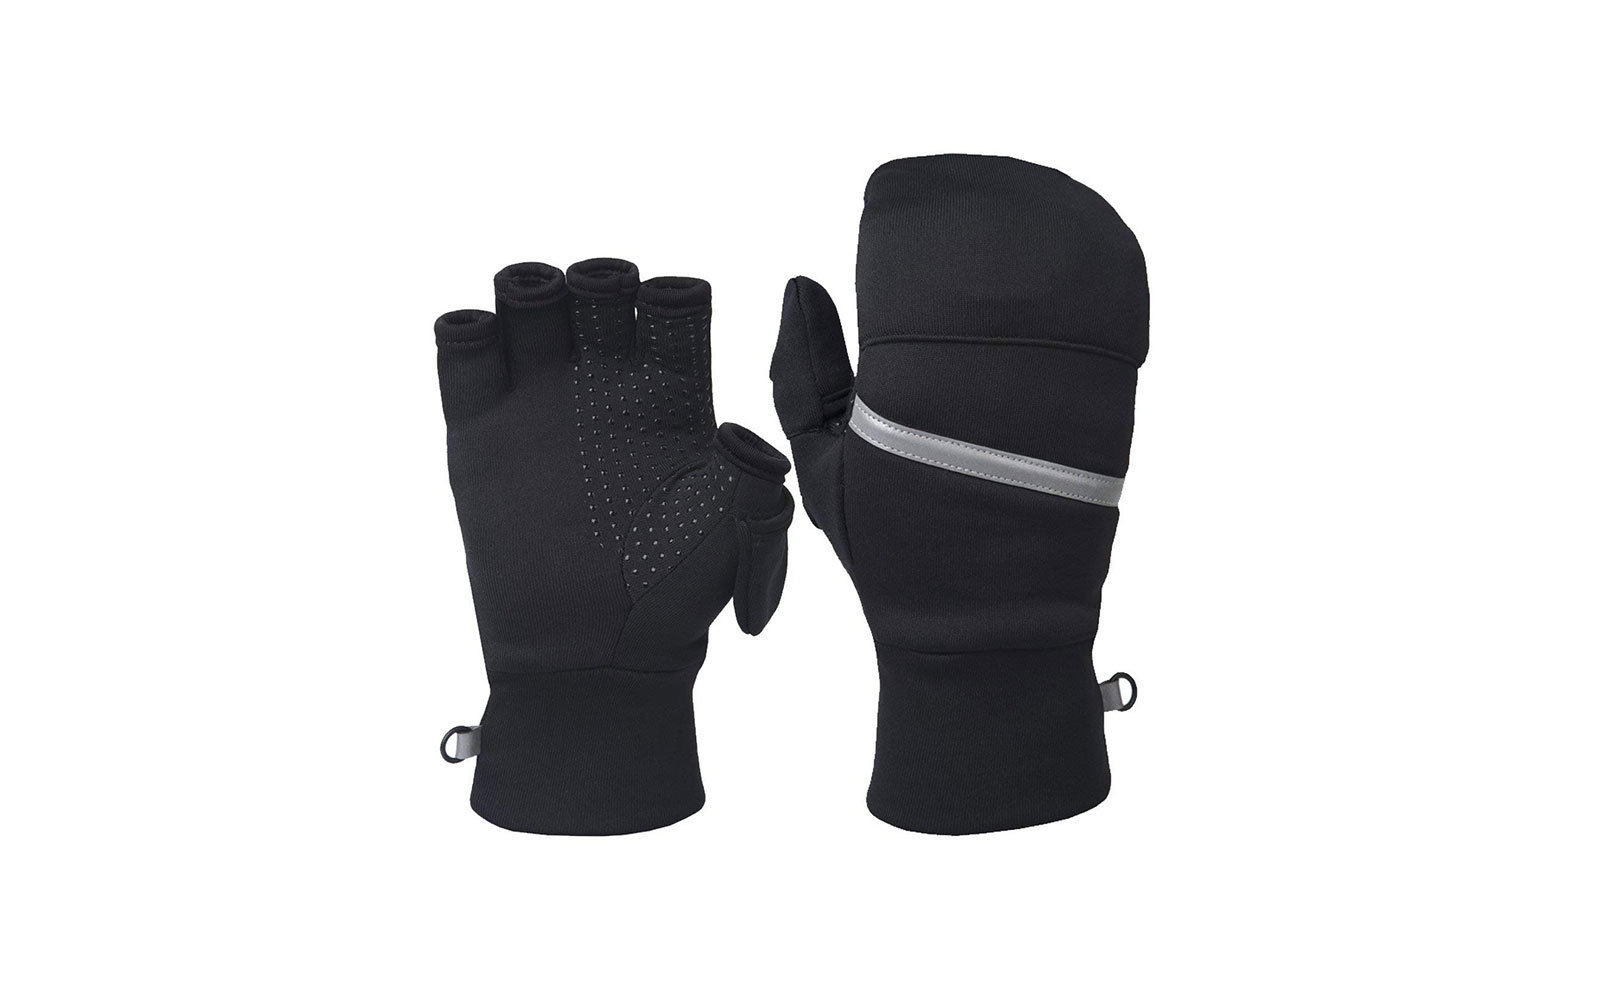 Best Convertible Mittens: TrailHeads PowerStretch Convertible Mittens